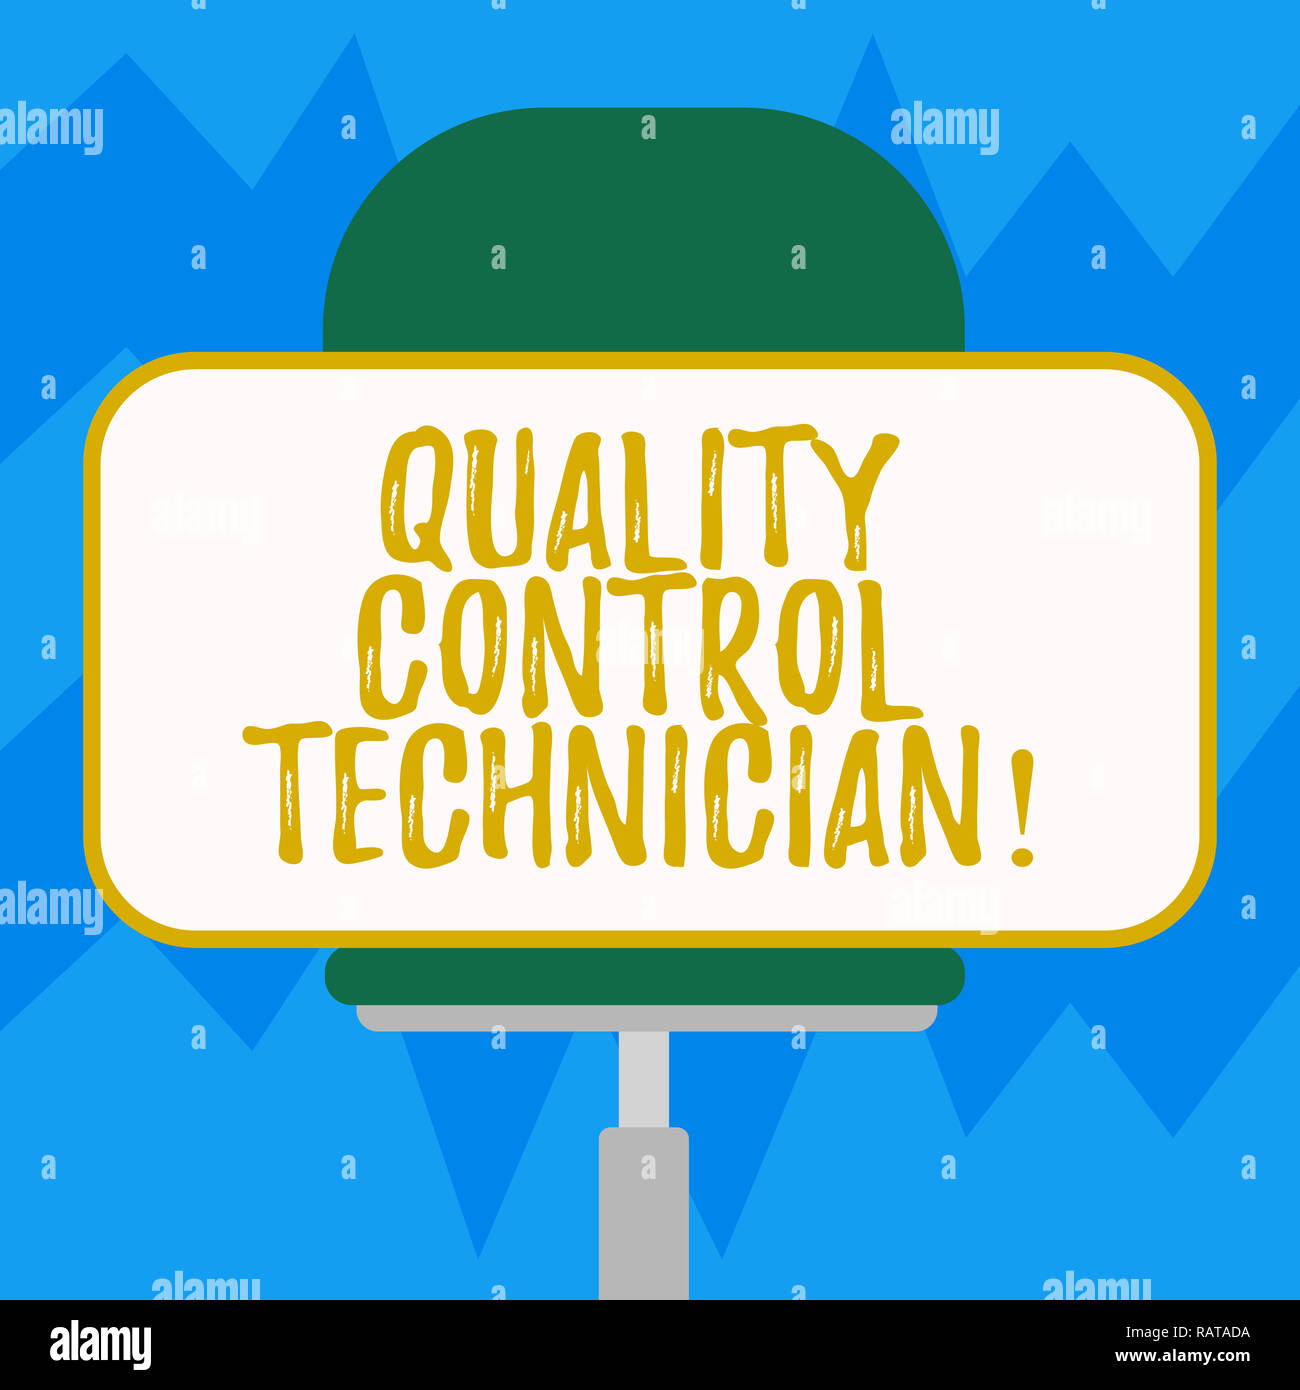 Text sign showing quality control technician conceptual photo responsible for qualityassurance processes blank rectangular shape